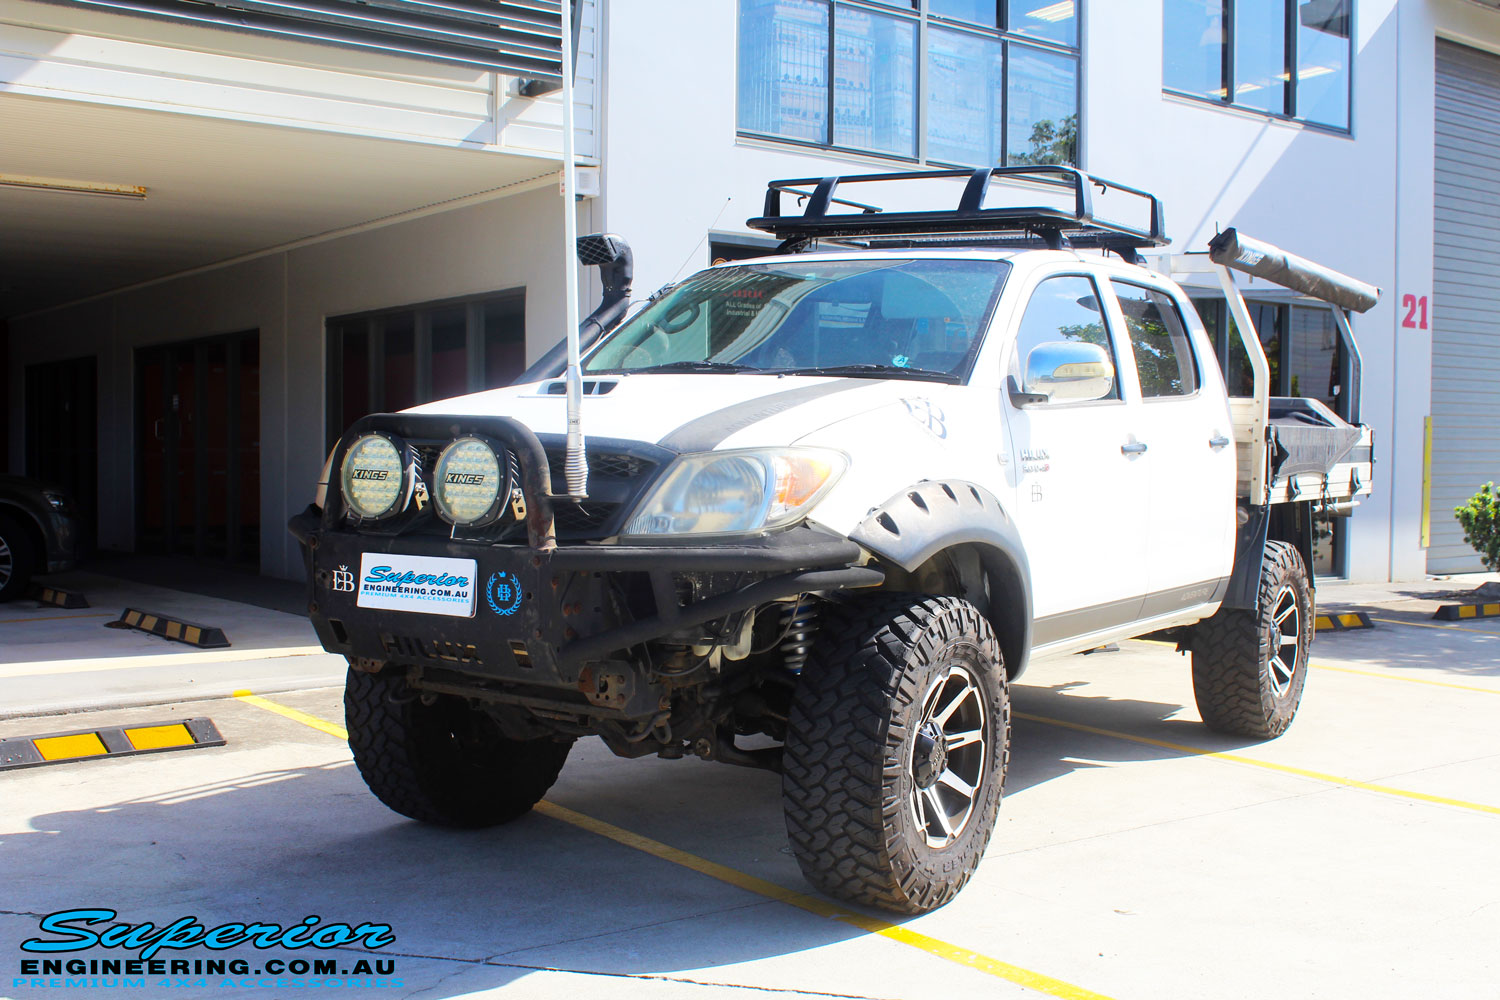 "Left front side view of a Toyota Vigo Hilux Dual Cab after fitment of a Superior Remote Reservoir 3"" Inch Lift Kit with King Coil Springs & Superior Billet Alloy Upper Control Arms"